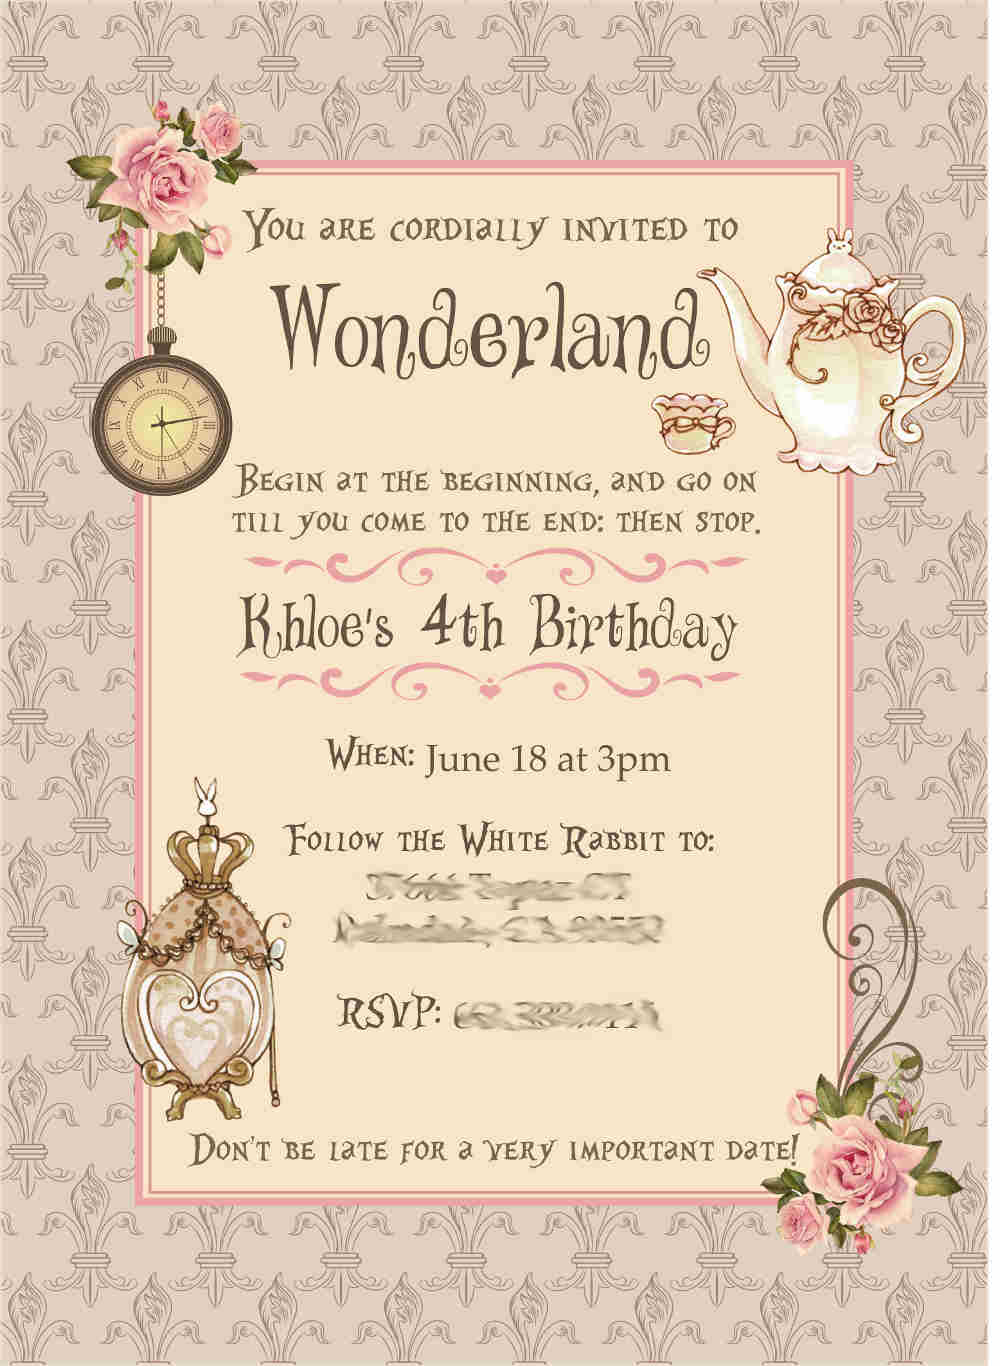 wonderland theme invitation card for birthday party in Delhi, Gurgaon, Faridabad